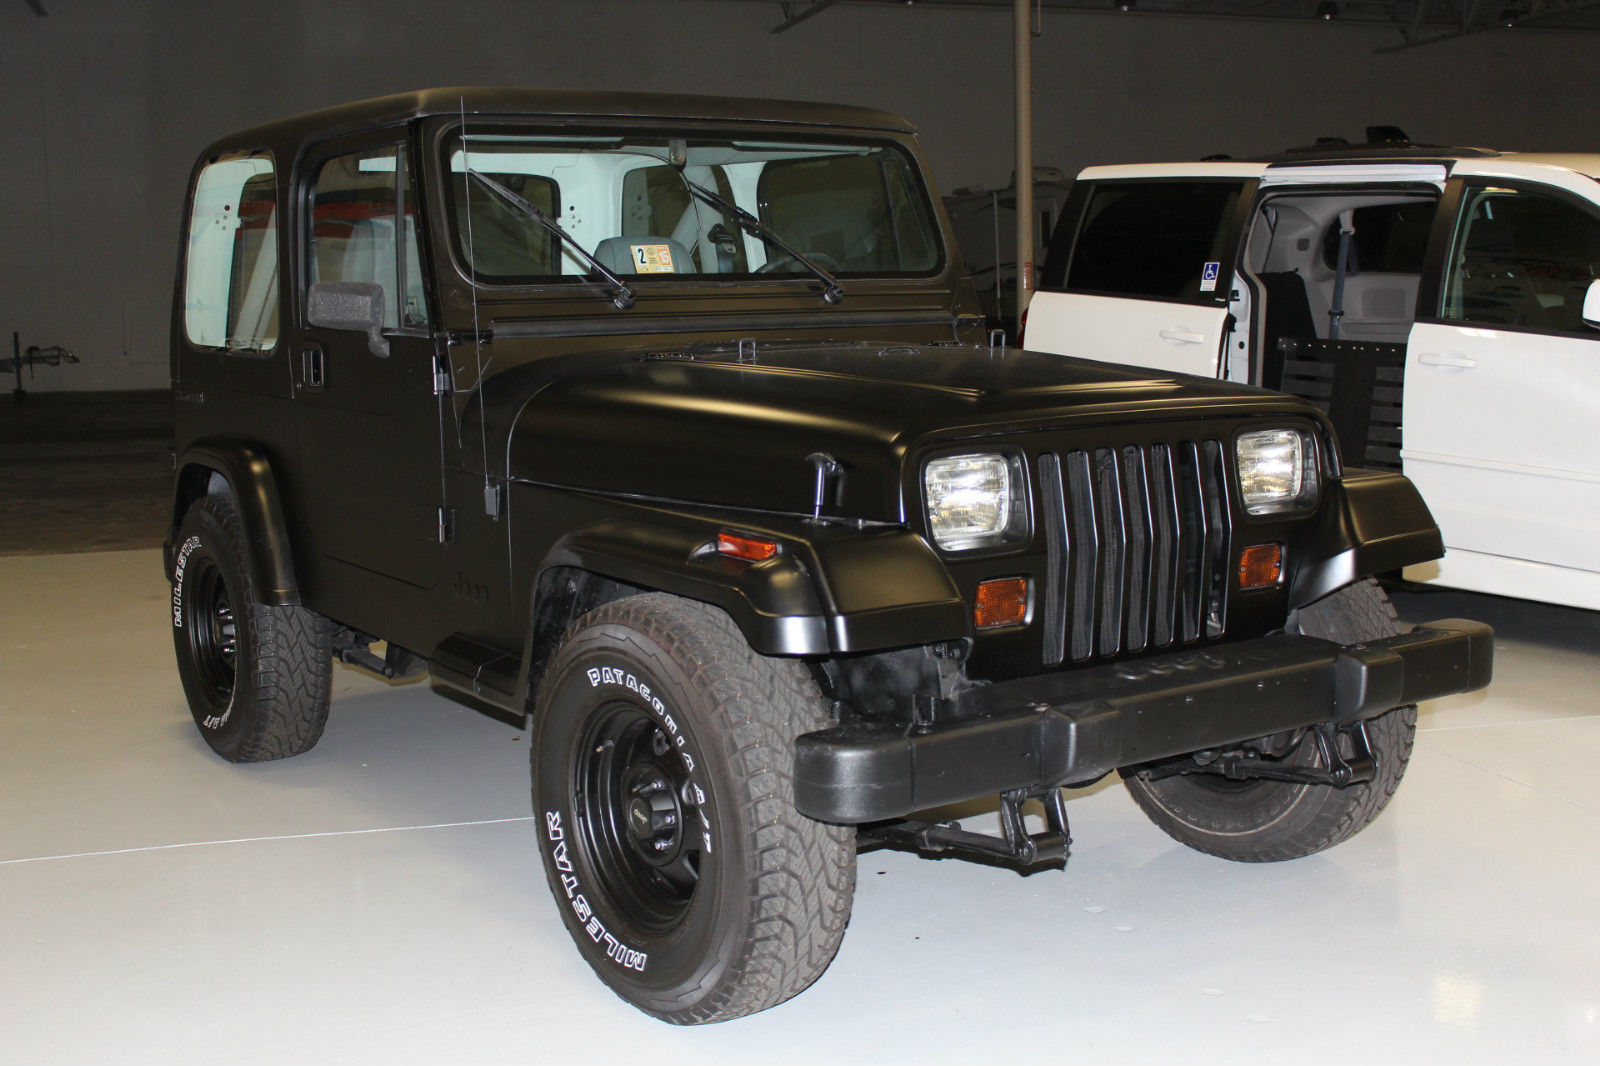 1990 jeep wrangler base sport utility 2 door 4 2l black hardtop new tires belts for sale in. Black Bedroom Furniture Sets. Home Design Ideas